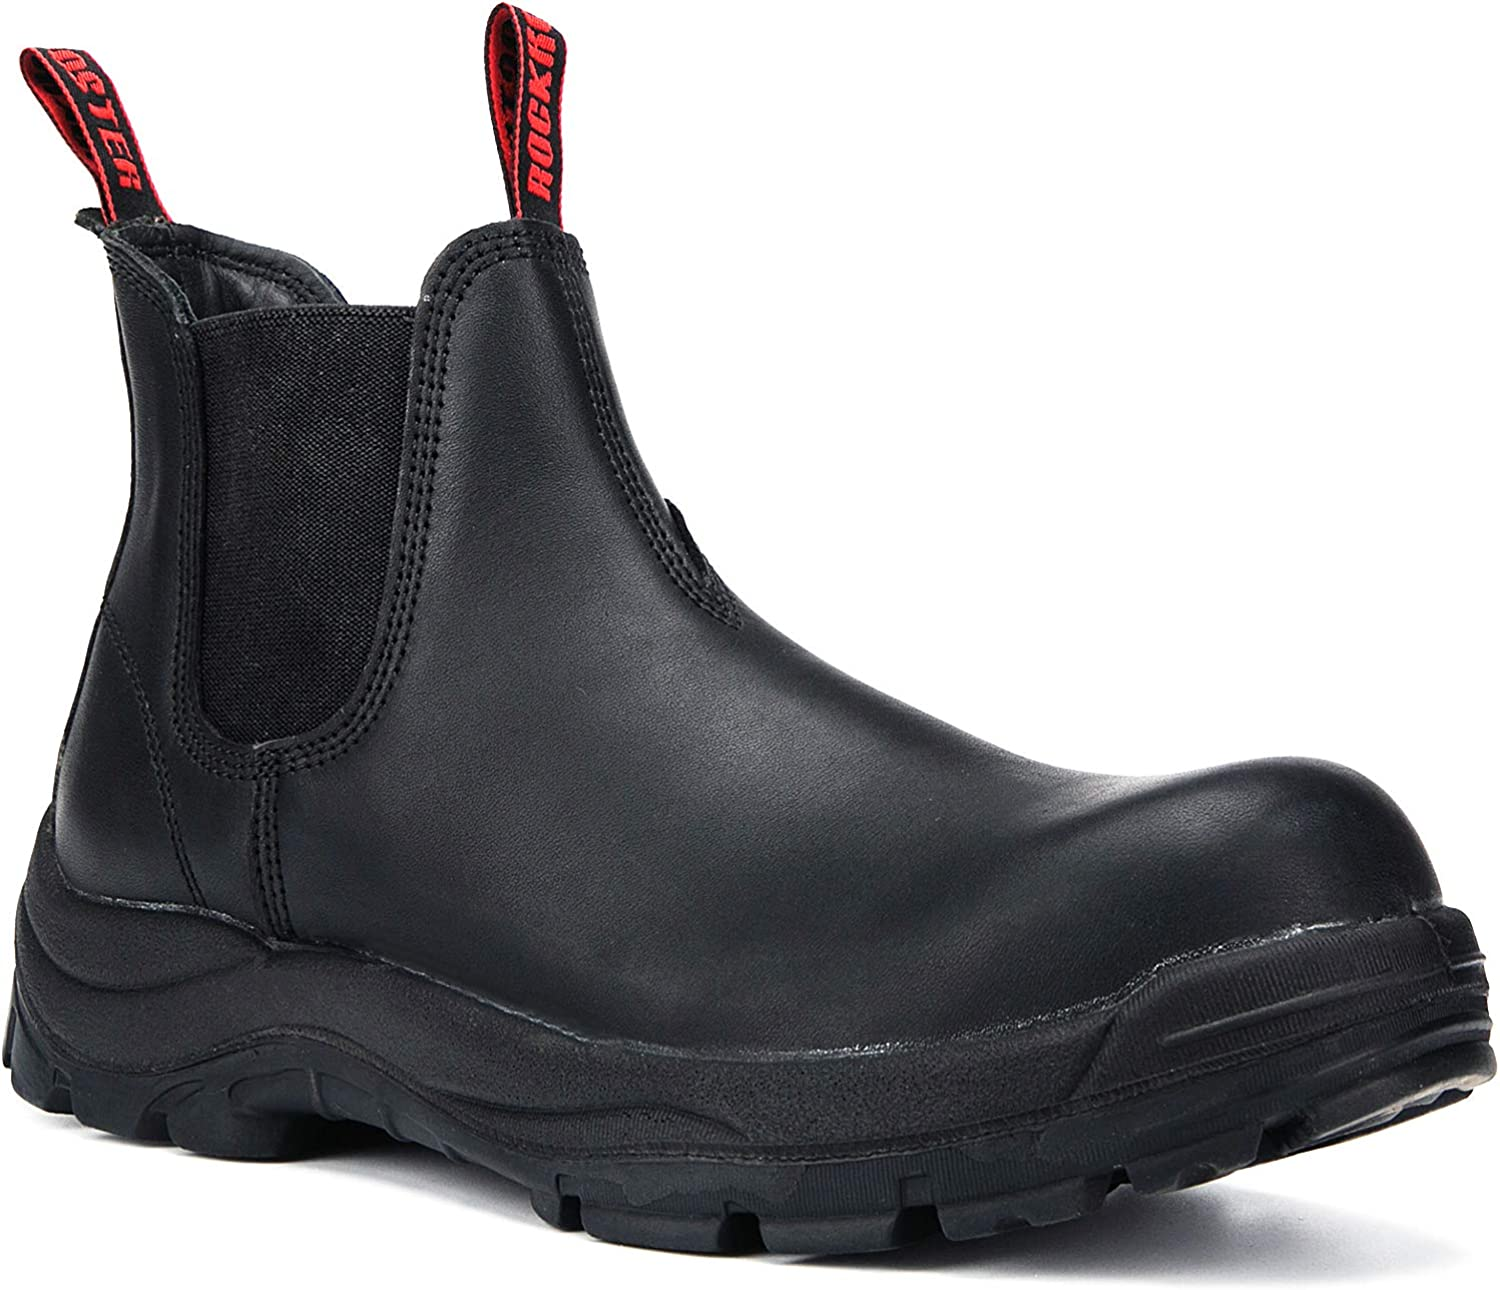 ROCKROOSTER Work Boots for Men, 6 inch Composite Toe, Slip On Safety Oiled Leather Shoes, Anti-Puncture,EH, Breathable, Water Resistant, Coolmax, Anti-fatigue(AK228, AK223)